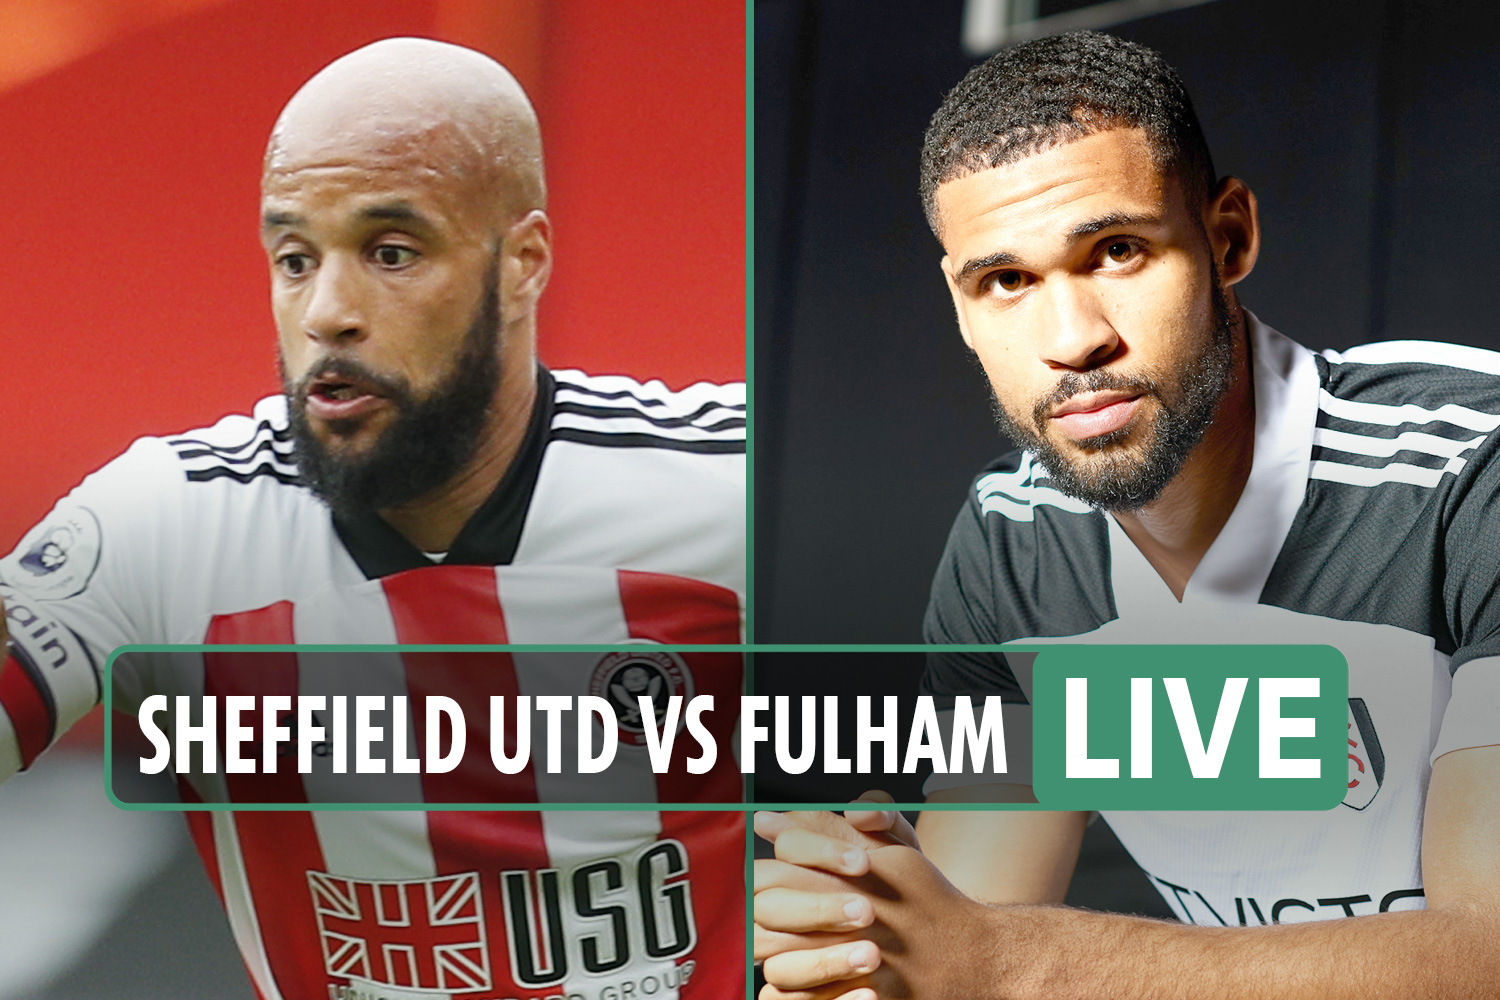 Sheffield United vs Fulham LIVE: Stream, TV channel, score – Sharp hits crucial VAR pen after Lookman opens scoring